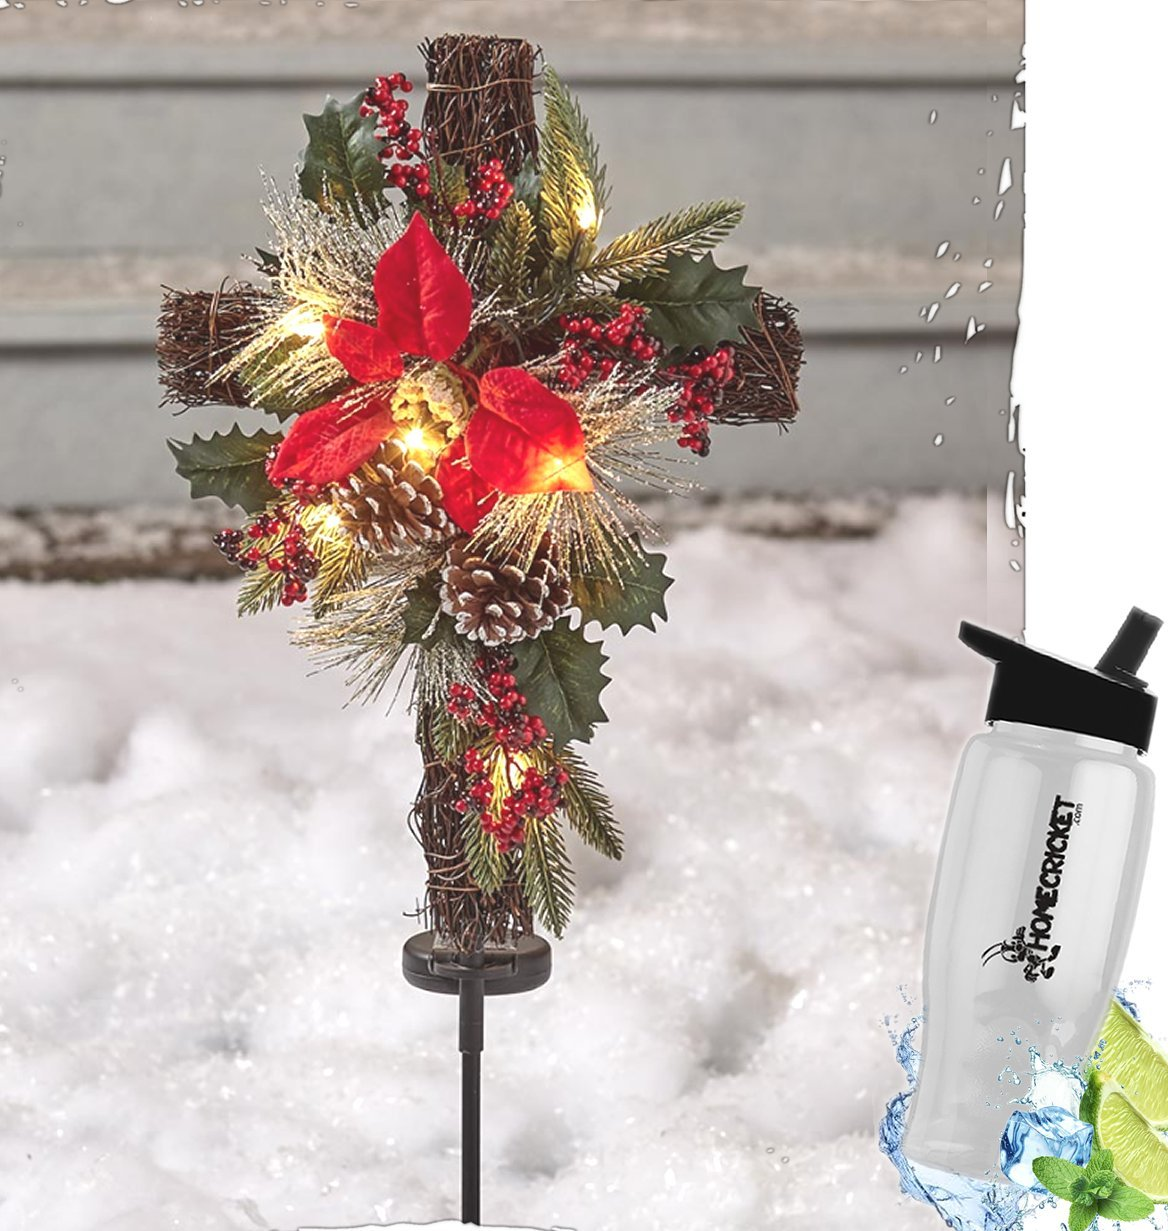 Gift Included- Solar Powered Christmas Holiday Lighted Cross Yard Stake Decor + FREE Bonus Water Bottle by Home Cricket Homecricket